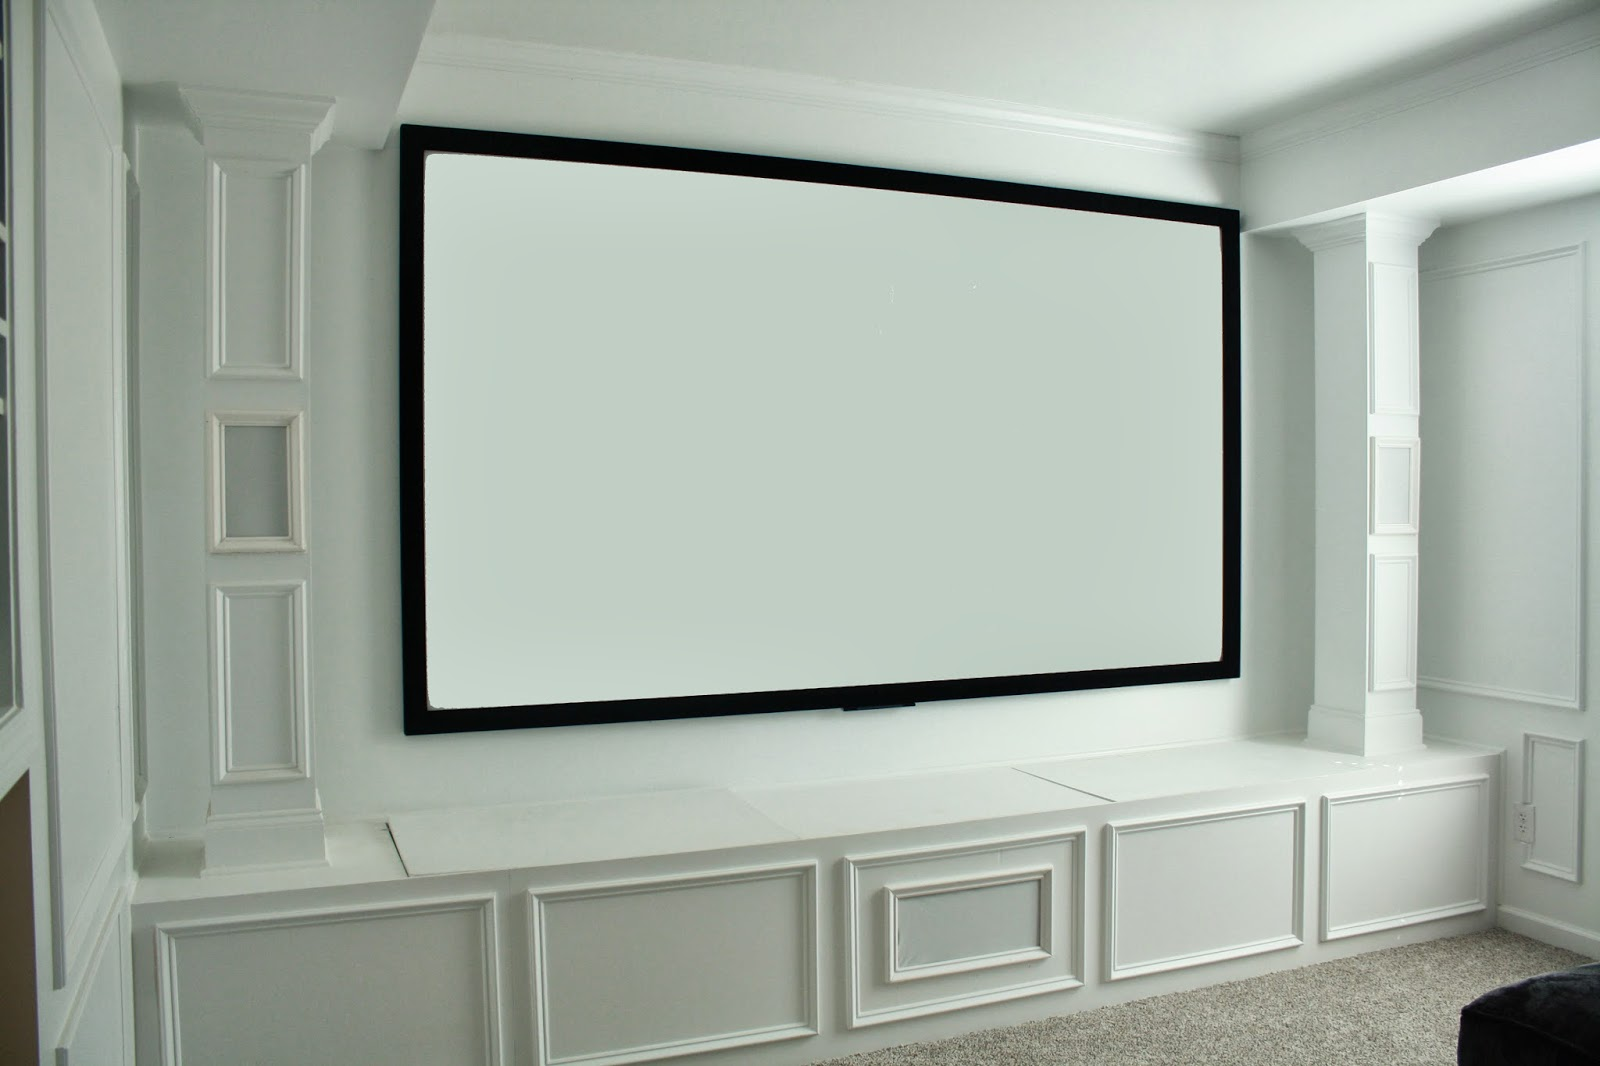 Projection Screen Paint Home Depot | Home Painting Ideas